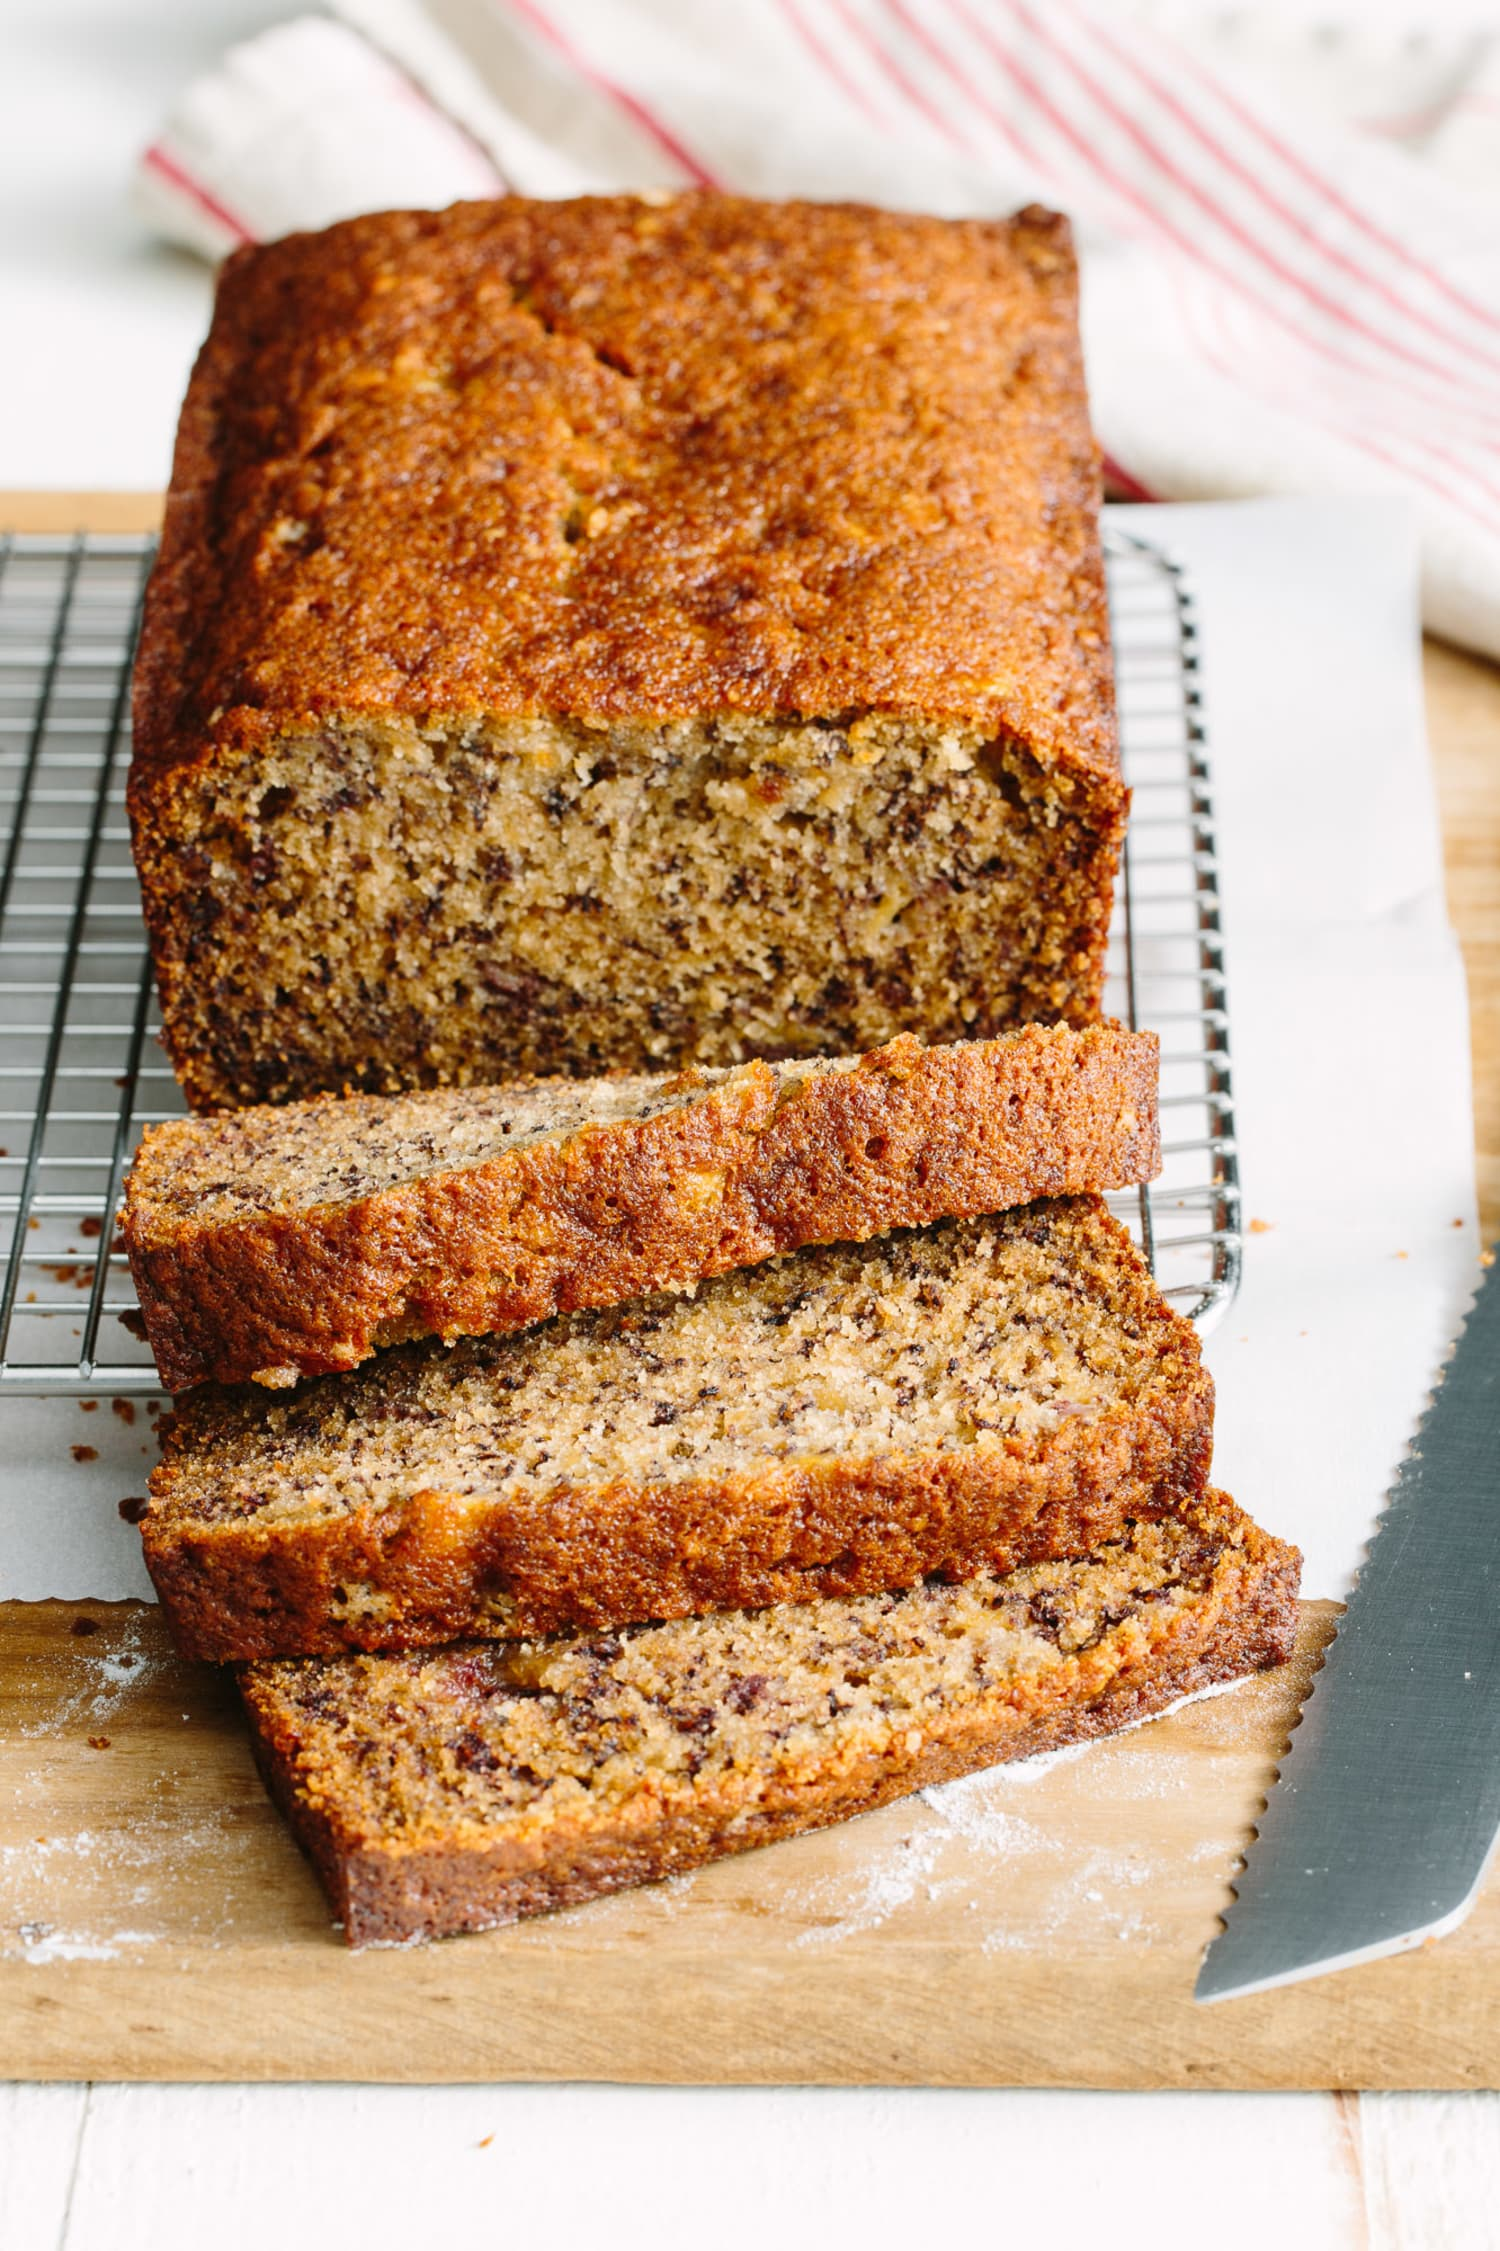 5 Easy Banana Bread Recipes to Make Whenever